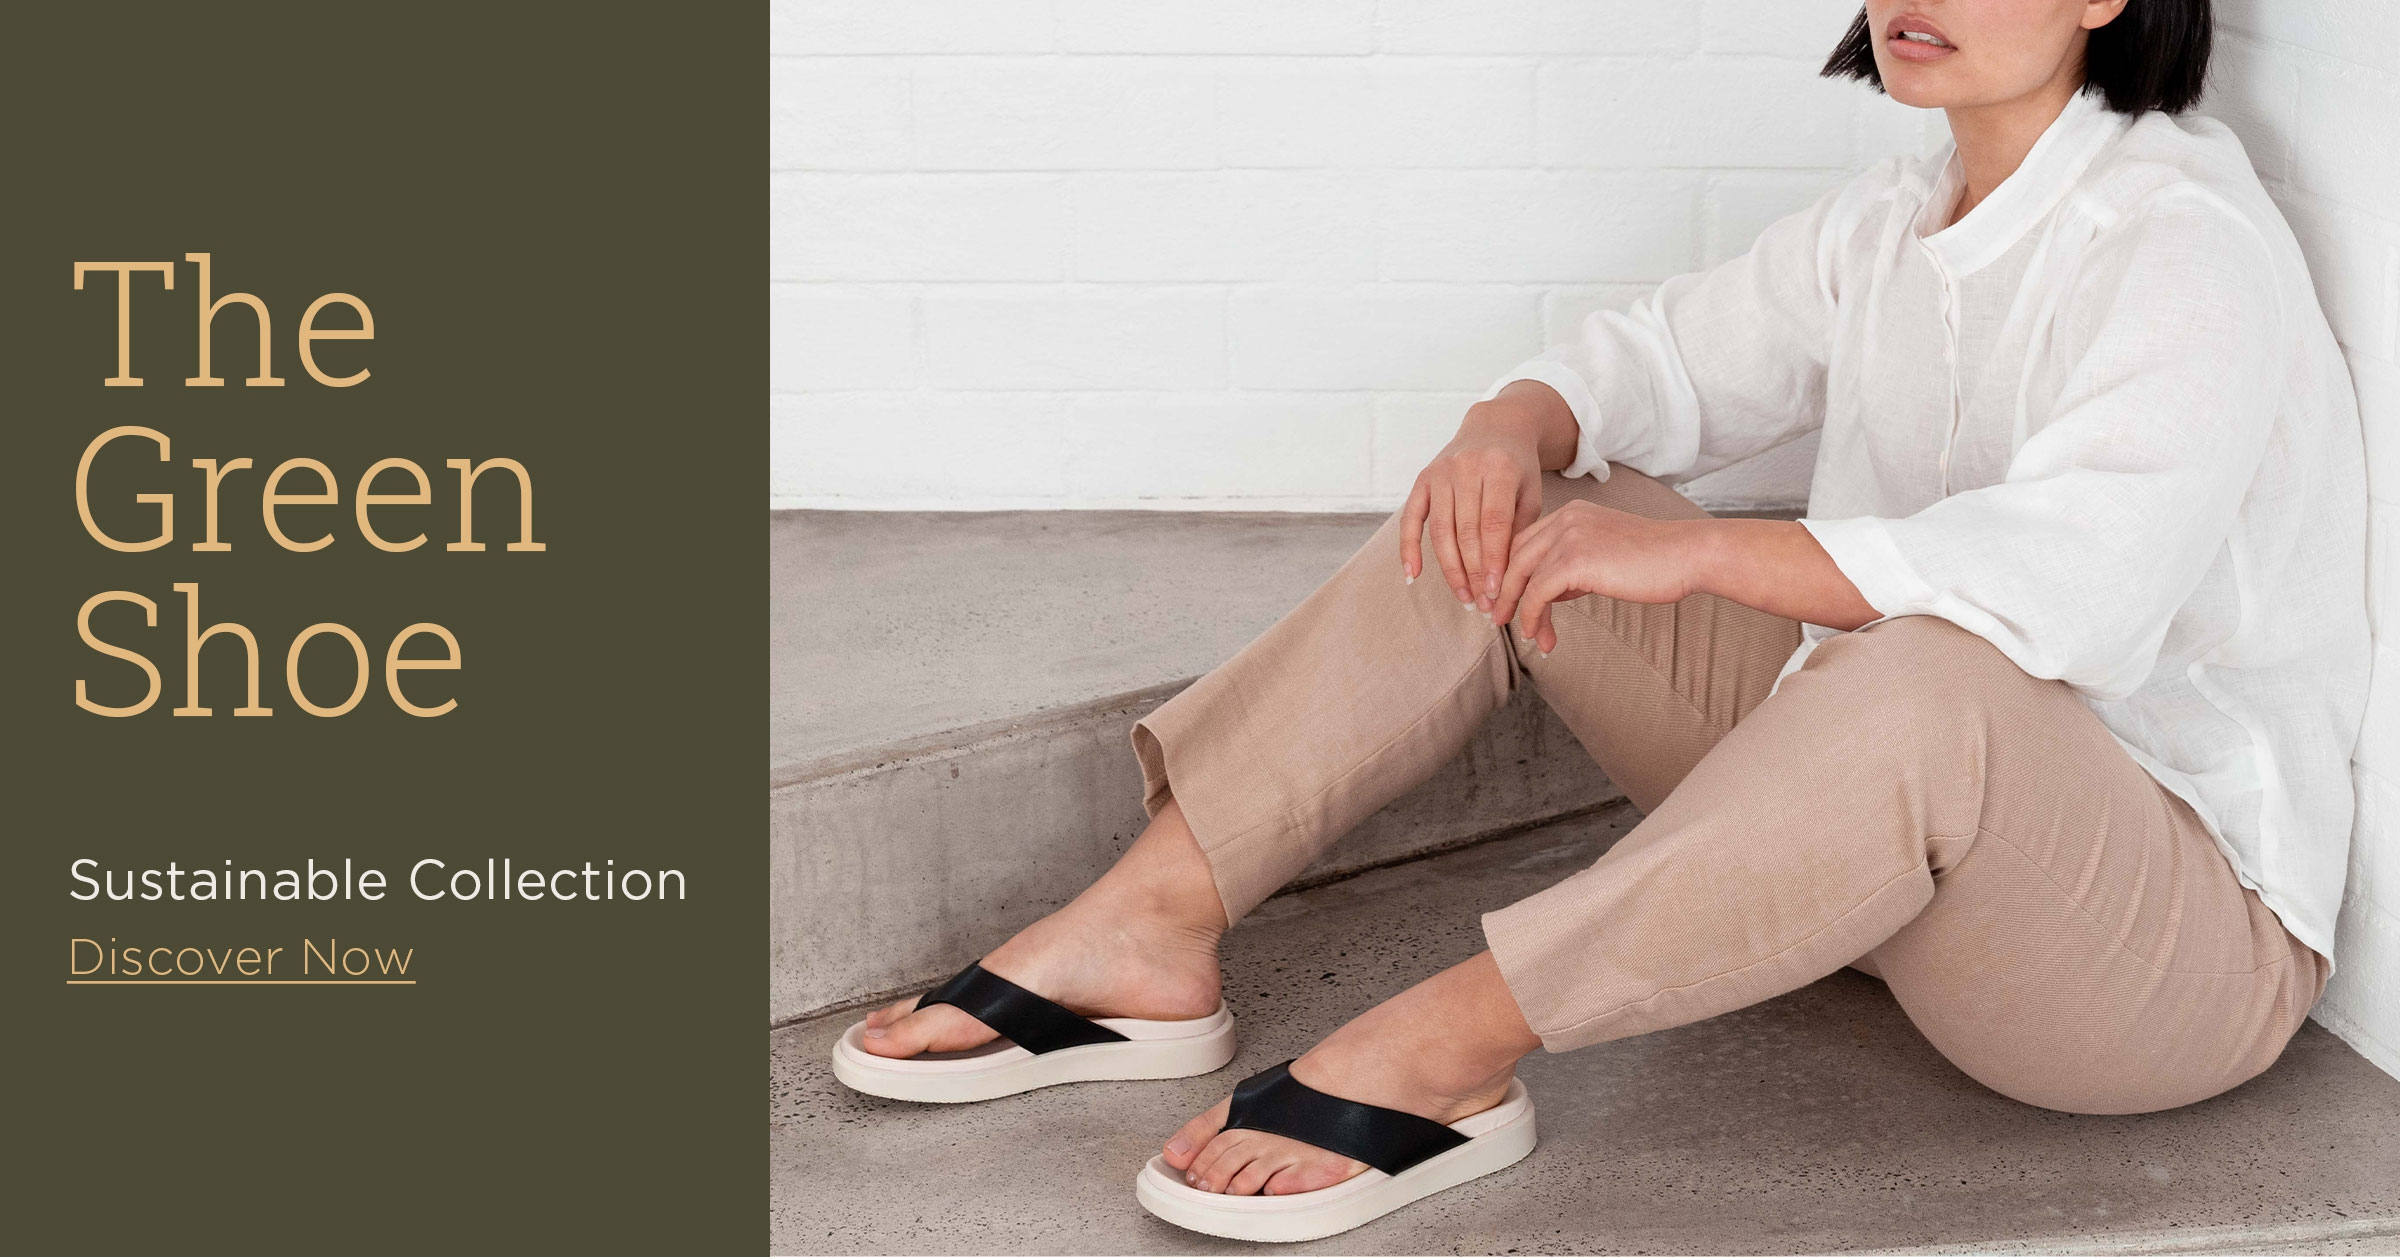 ZEROE by Airflex | Women's Sustainable Shoes | Discover Now